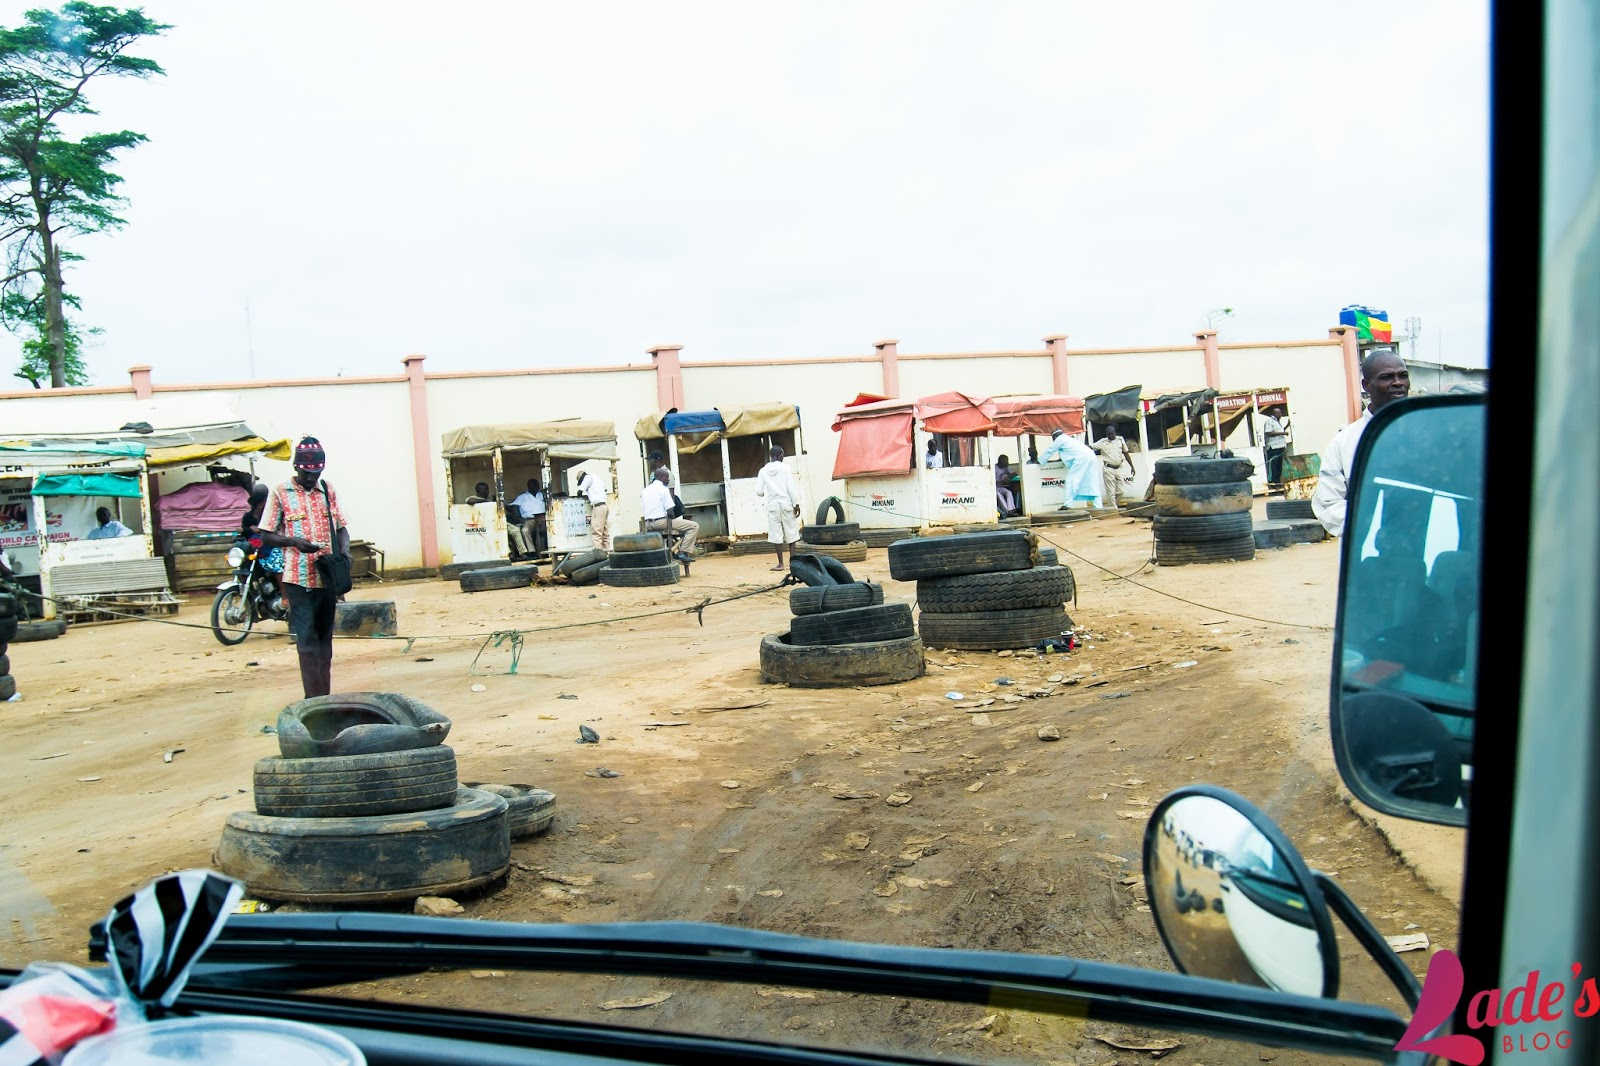 Lade's Blog: Guide to Having a Nice Time in Benin Republic